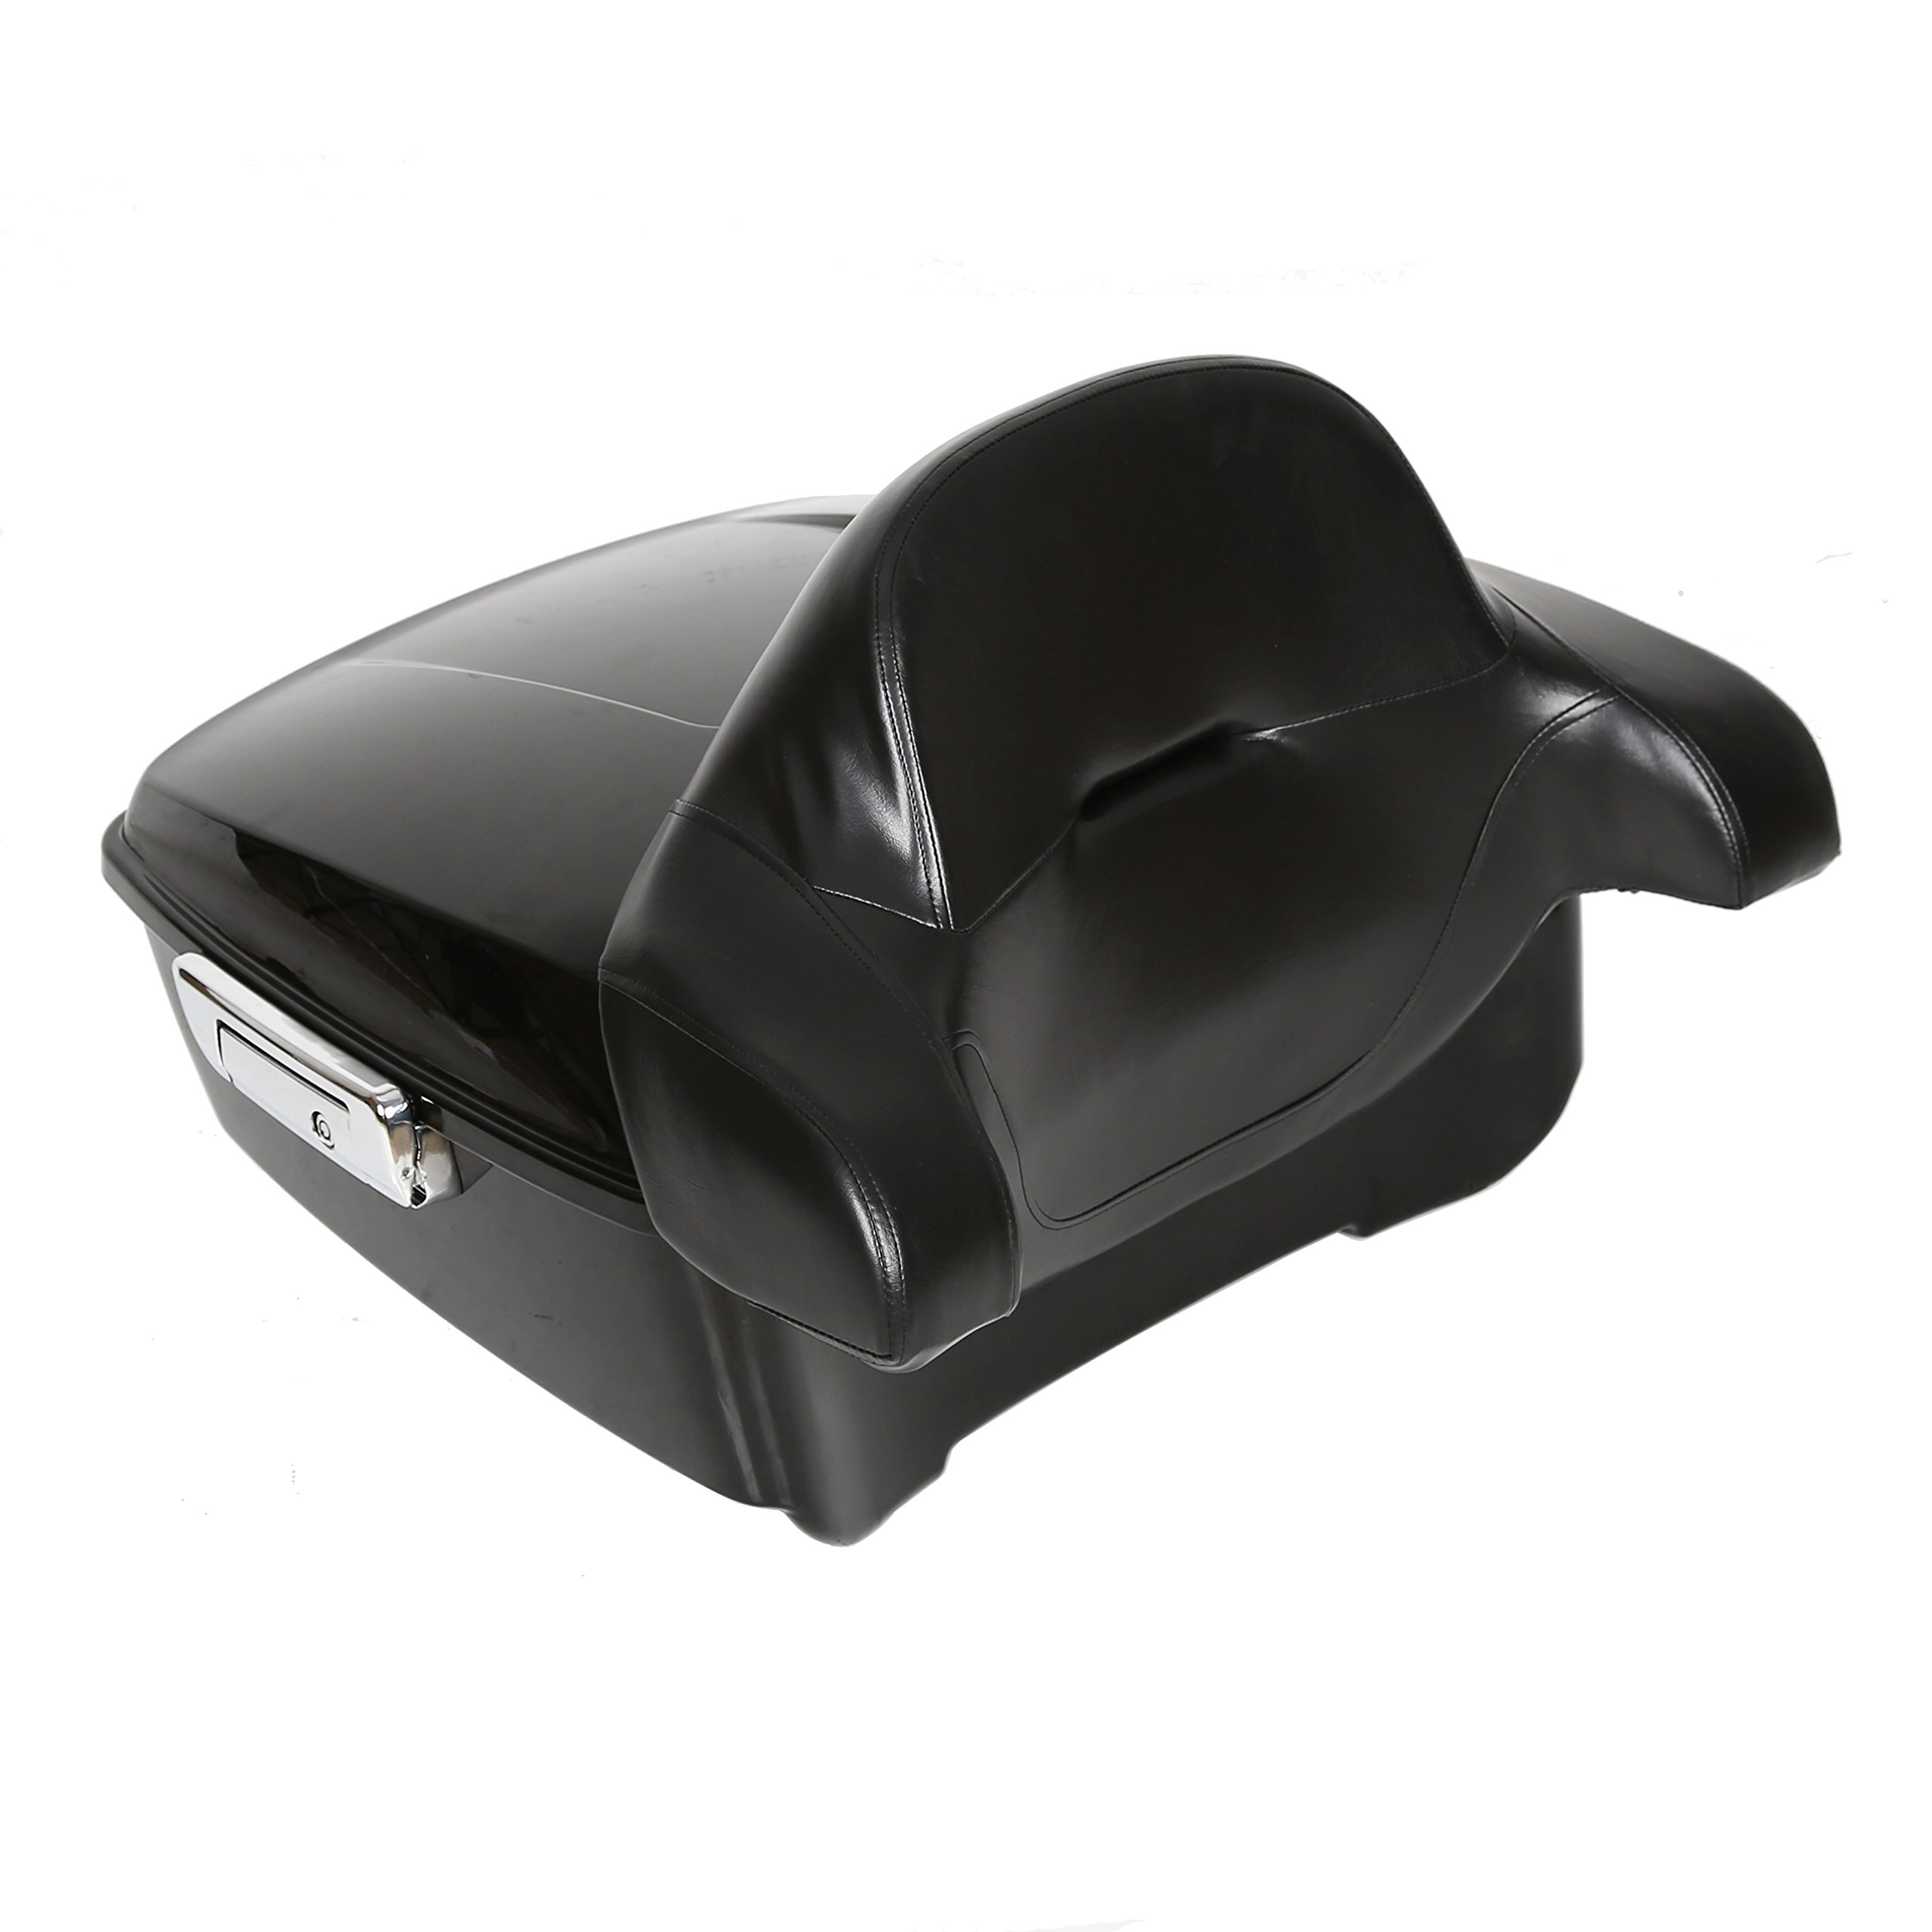 King Tour Pack Touring Pak Trunk Tail Box W/or W/O Wrap-around Backrest Pad For Harley Touring Models 2014-2018 New (King Tour Pack W/Backrest)